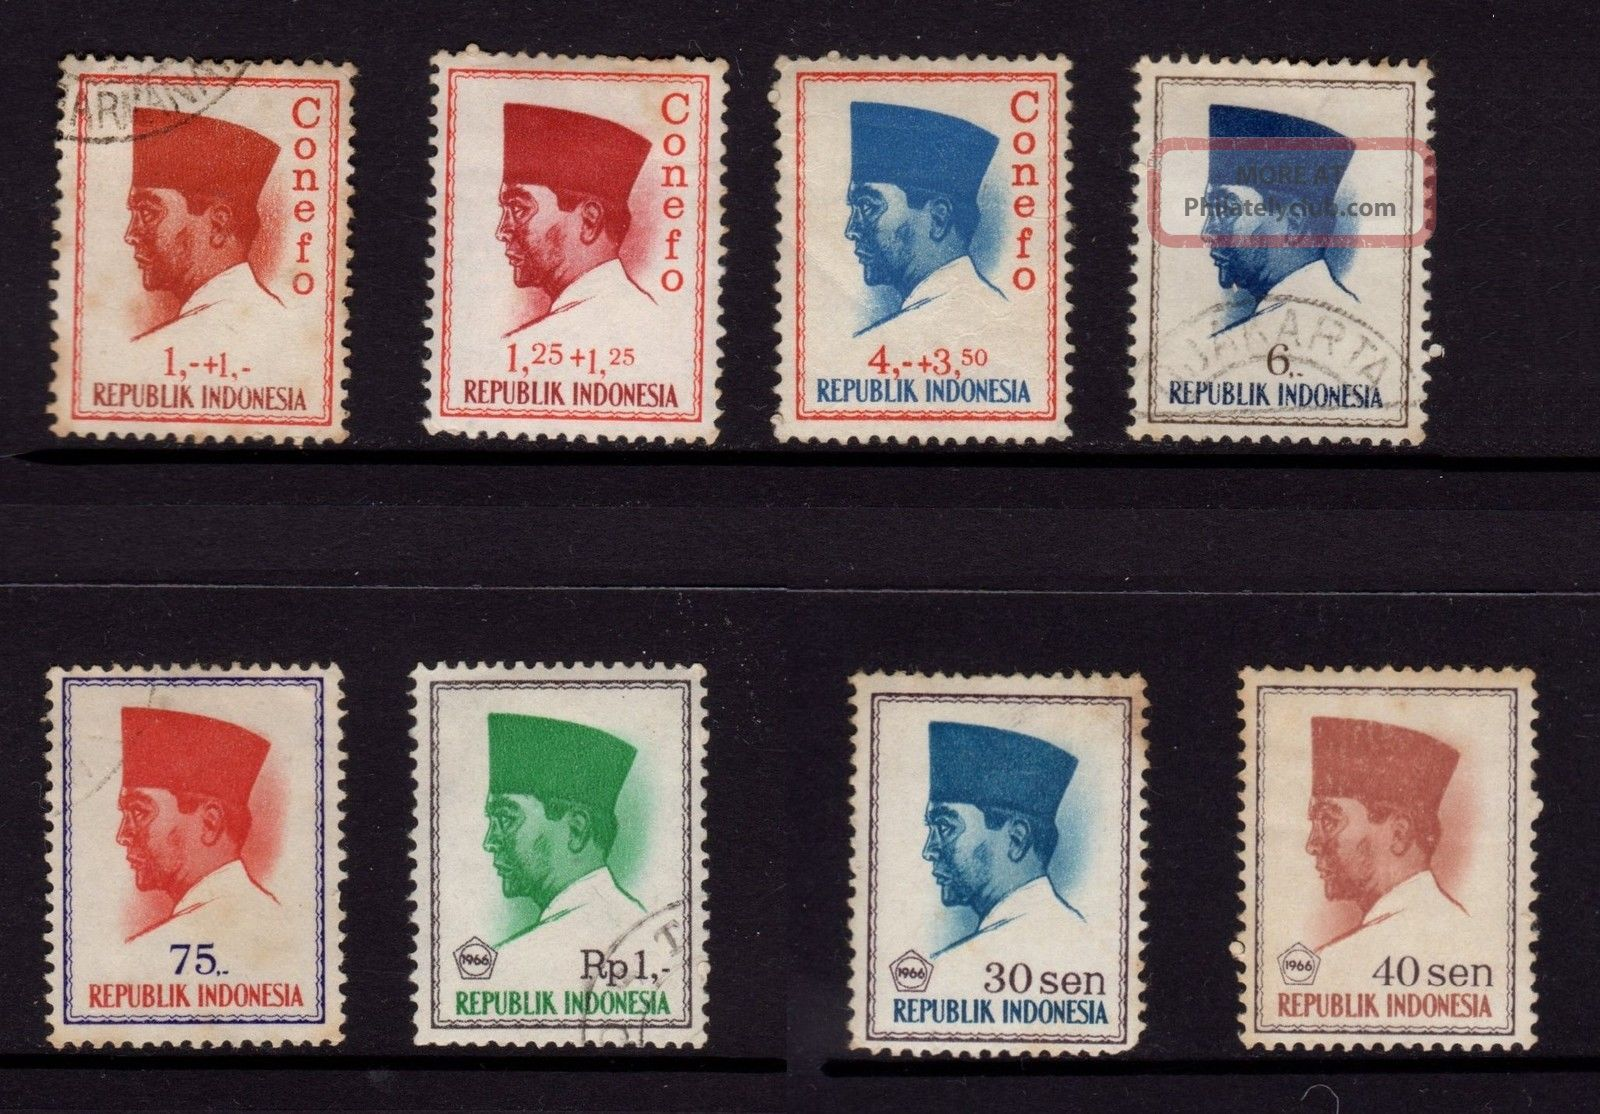 Indonesia,  Sc B165,  B166,  B170,  Conefo & Sc 616,  622,  680,  676,  677 Pres.  Sukarno, Asia photo